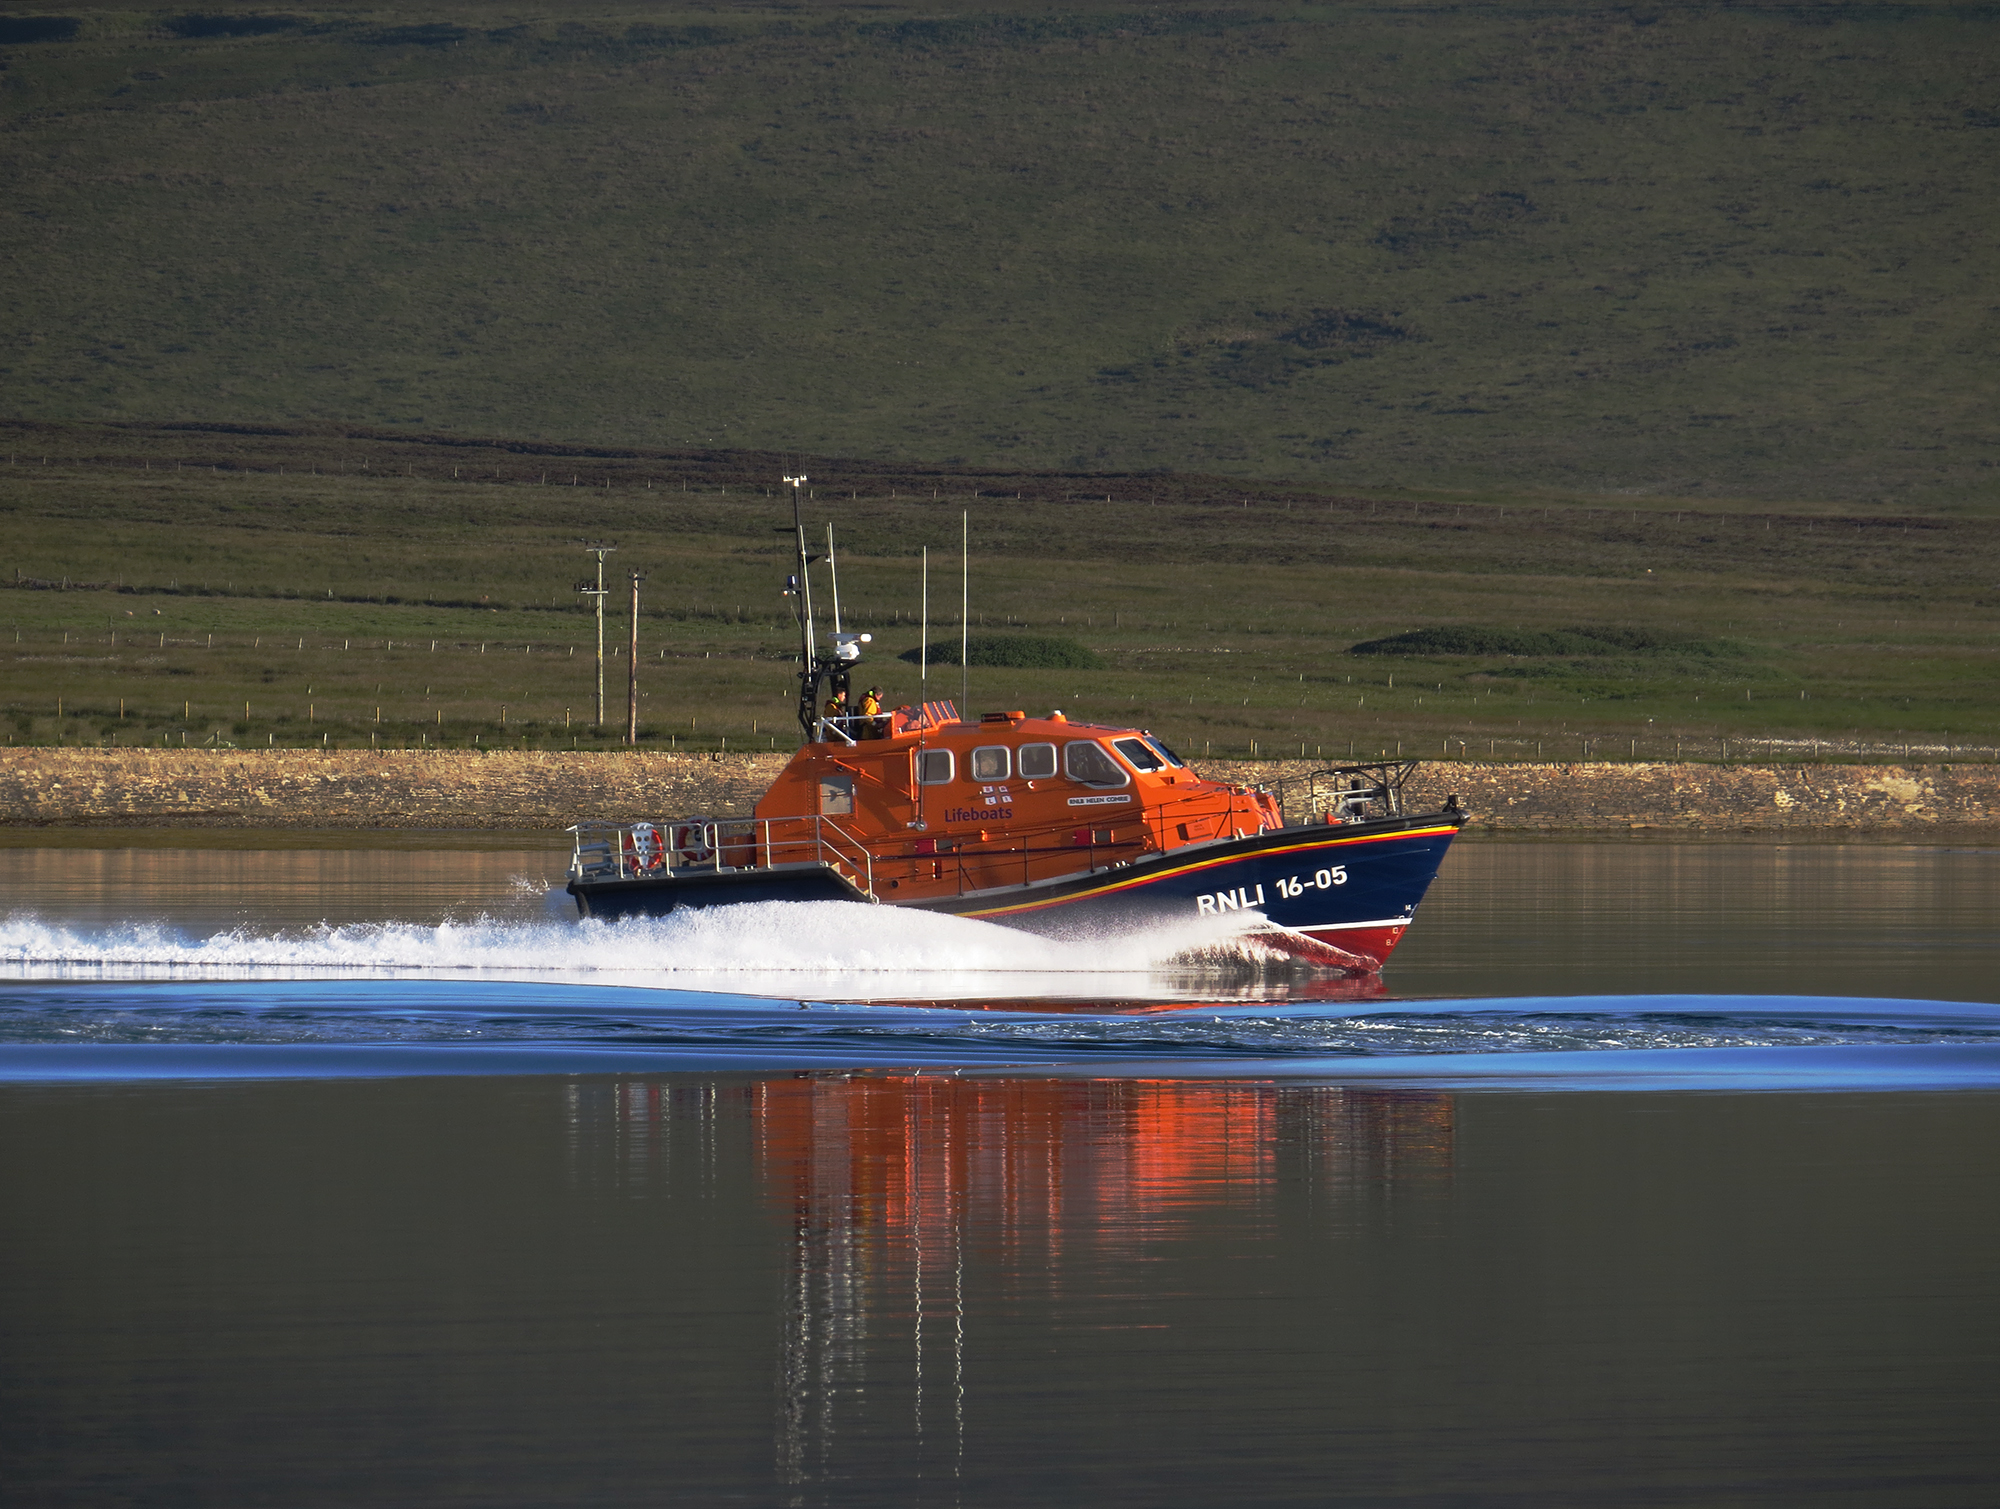 RNLI Longhope Lifeboat launched this morning on service, heading up Longhope Bay.